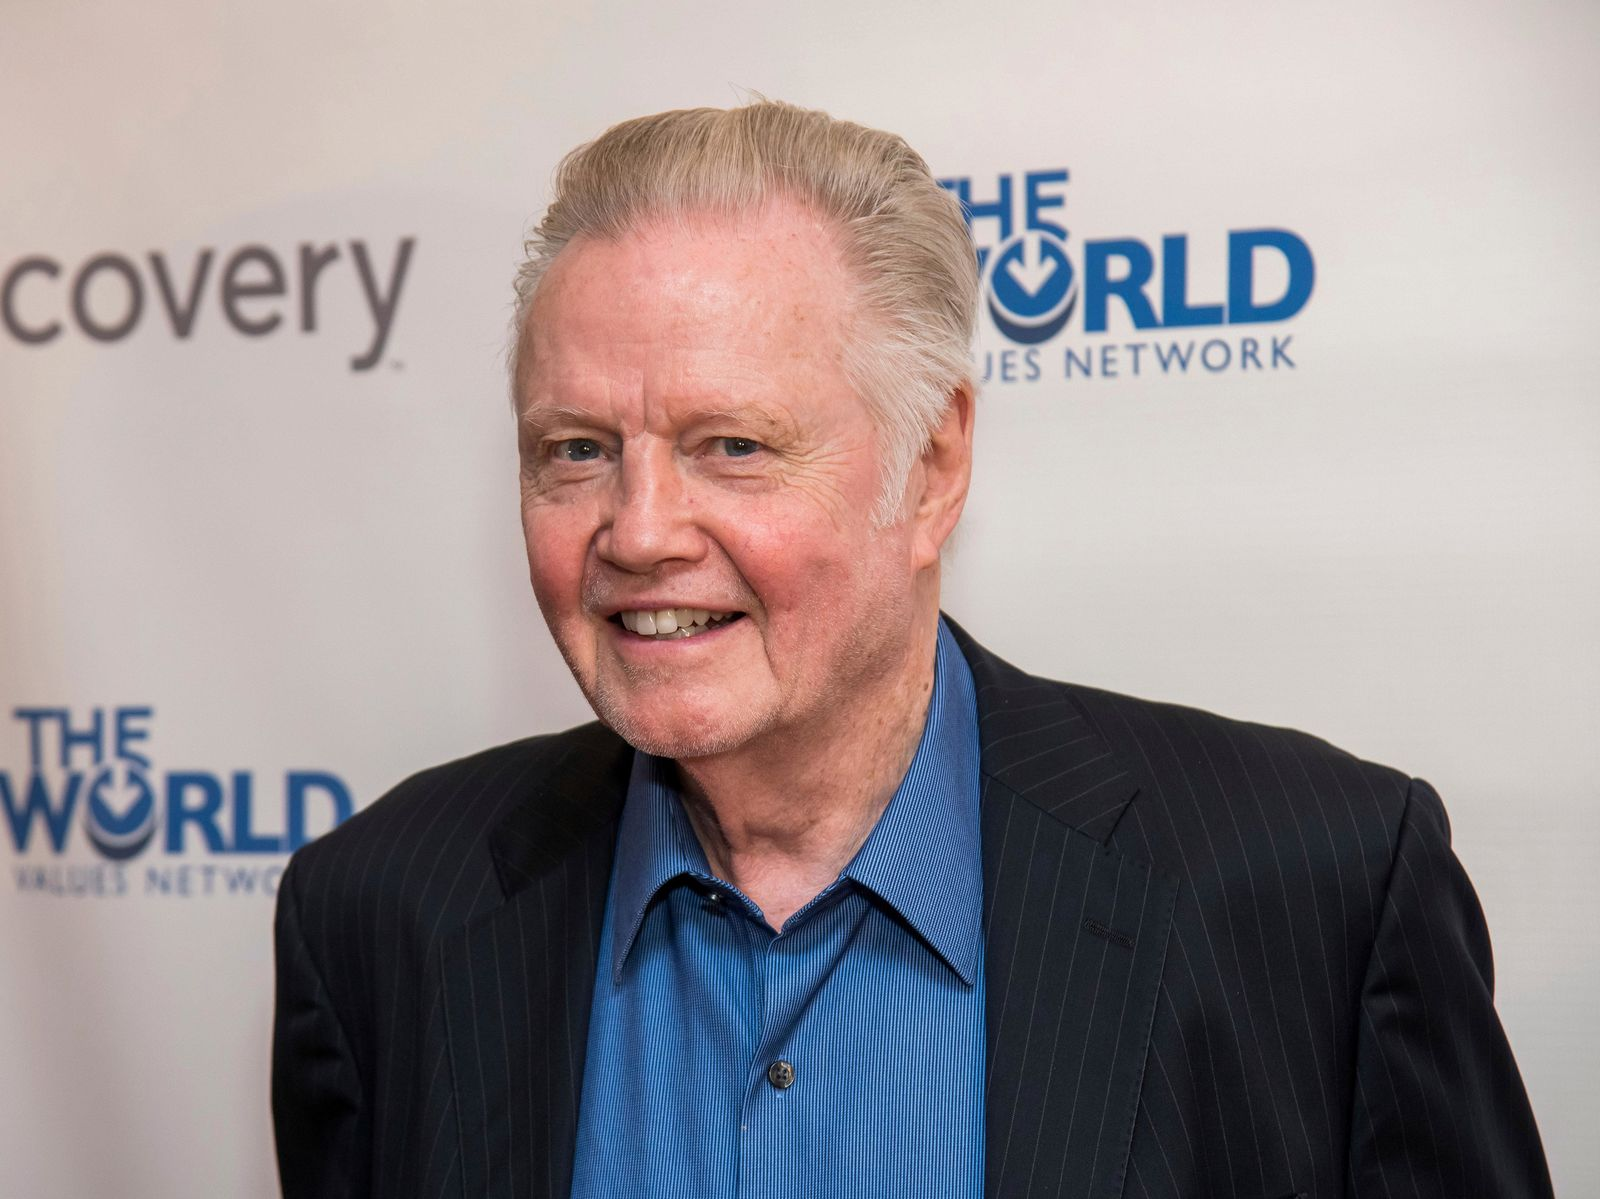 FILE - In this March 28, 2019, file photo, Jon Voight attends the Champions of Jewish Values International Awards gala at Carnegie Hall in New York. (Photo by Charles Sykes/Invision/AP, File)